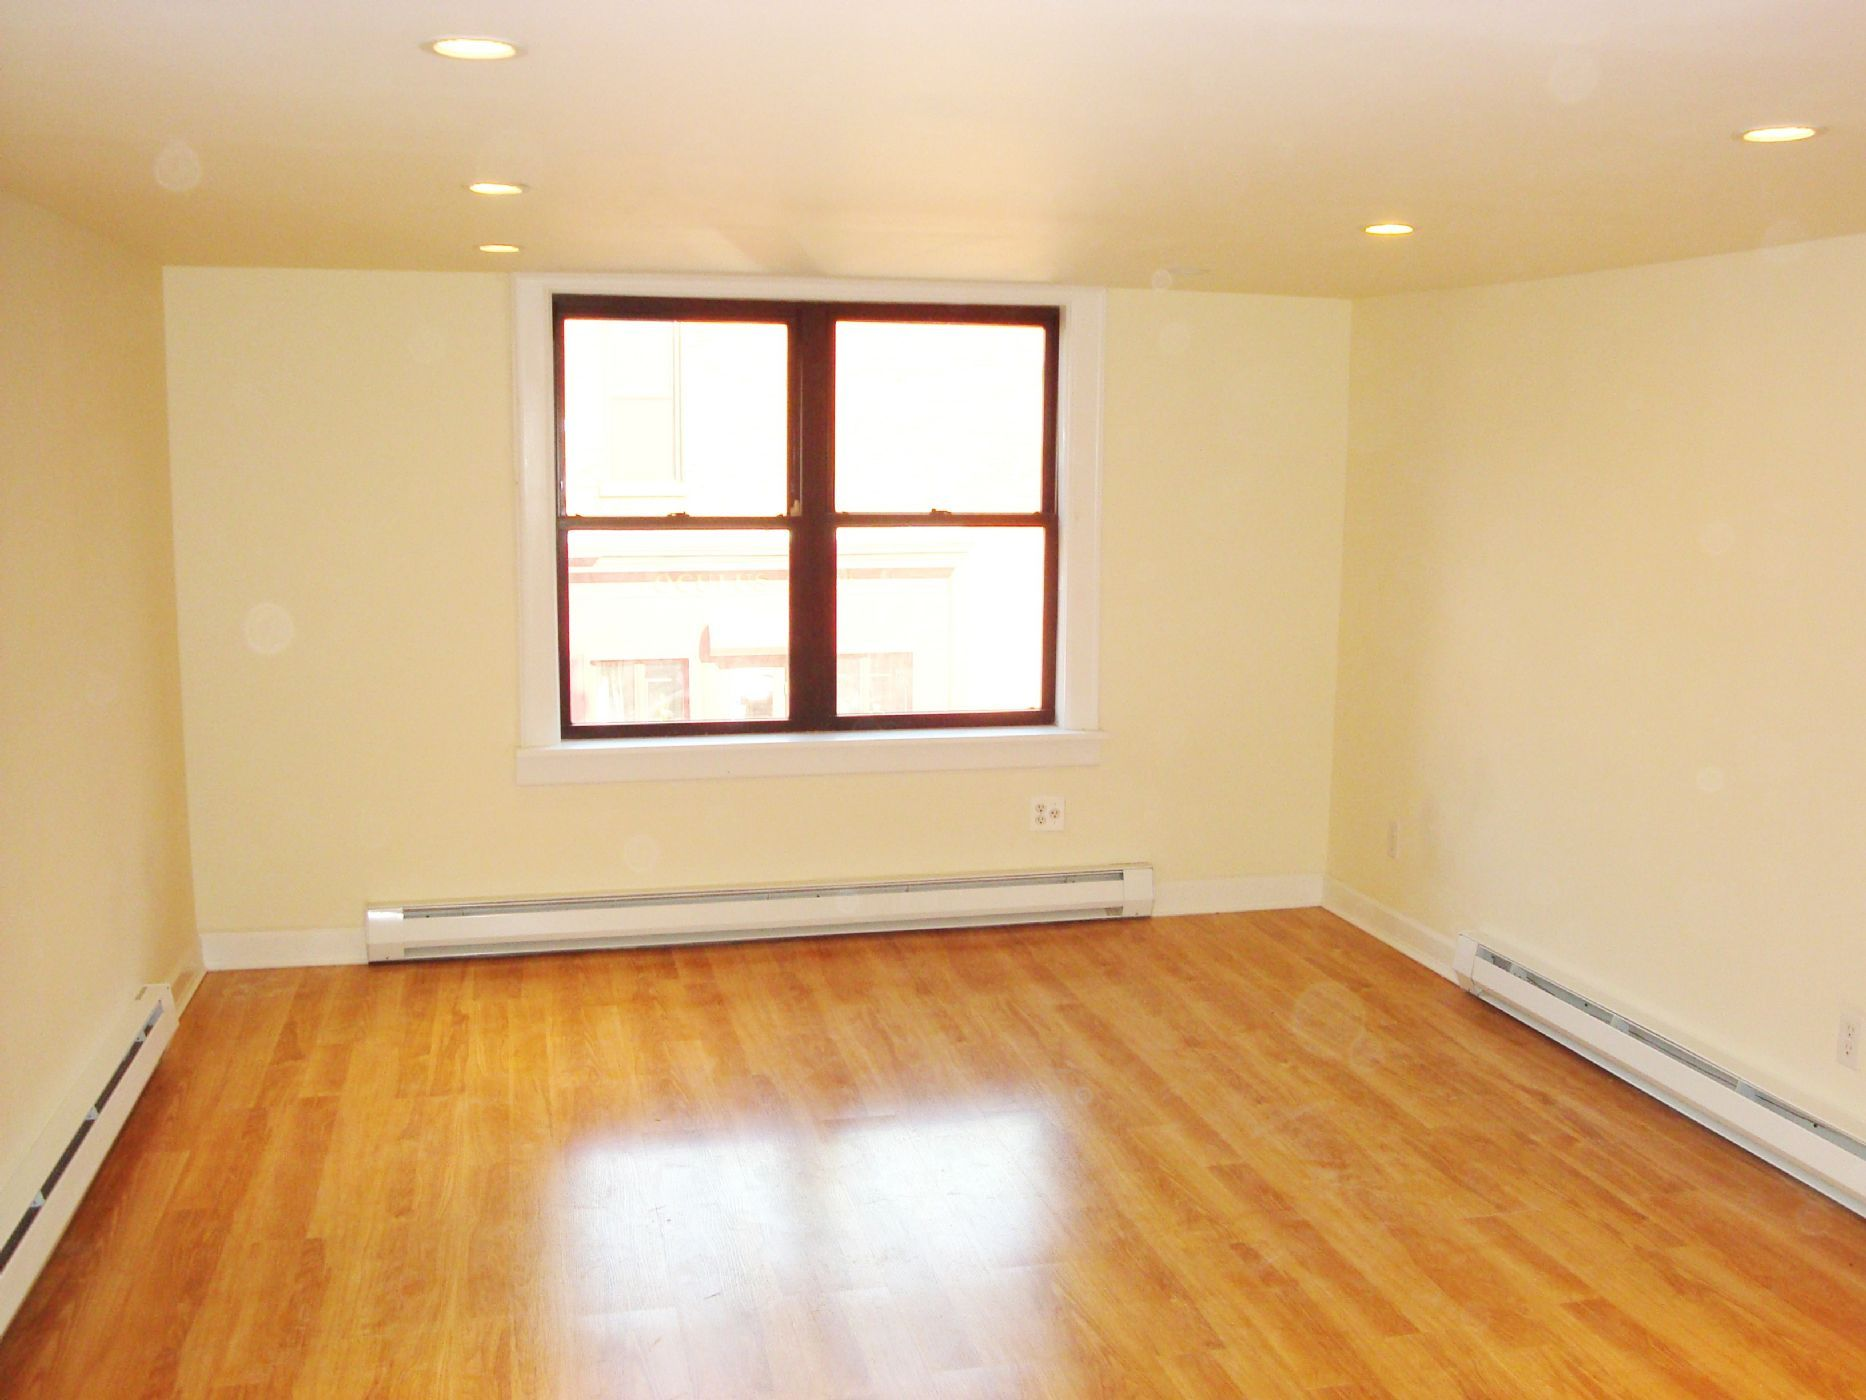 Carroll Gardens Brooklyn Home, NY Real Estate Listing